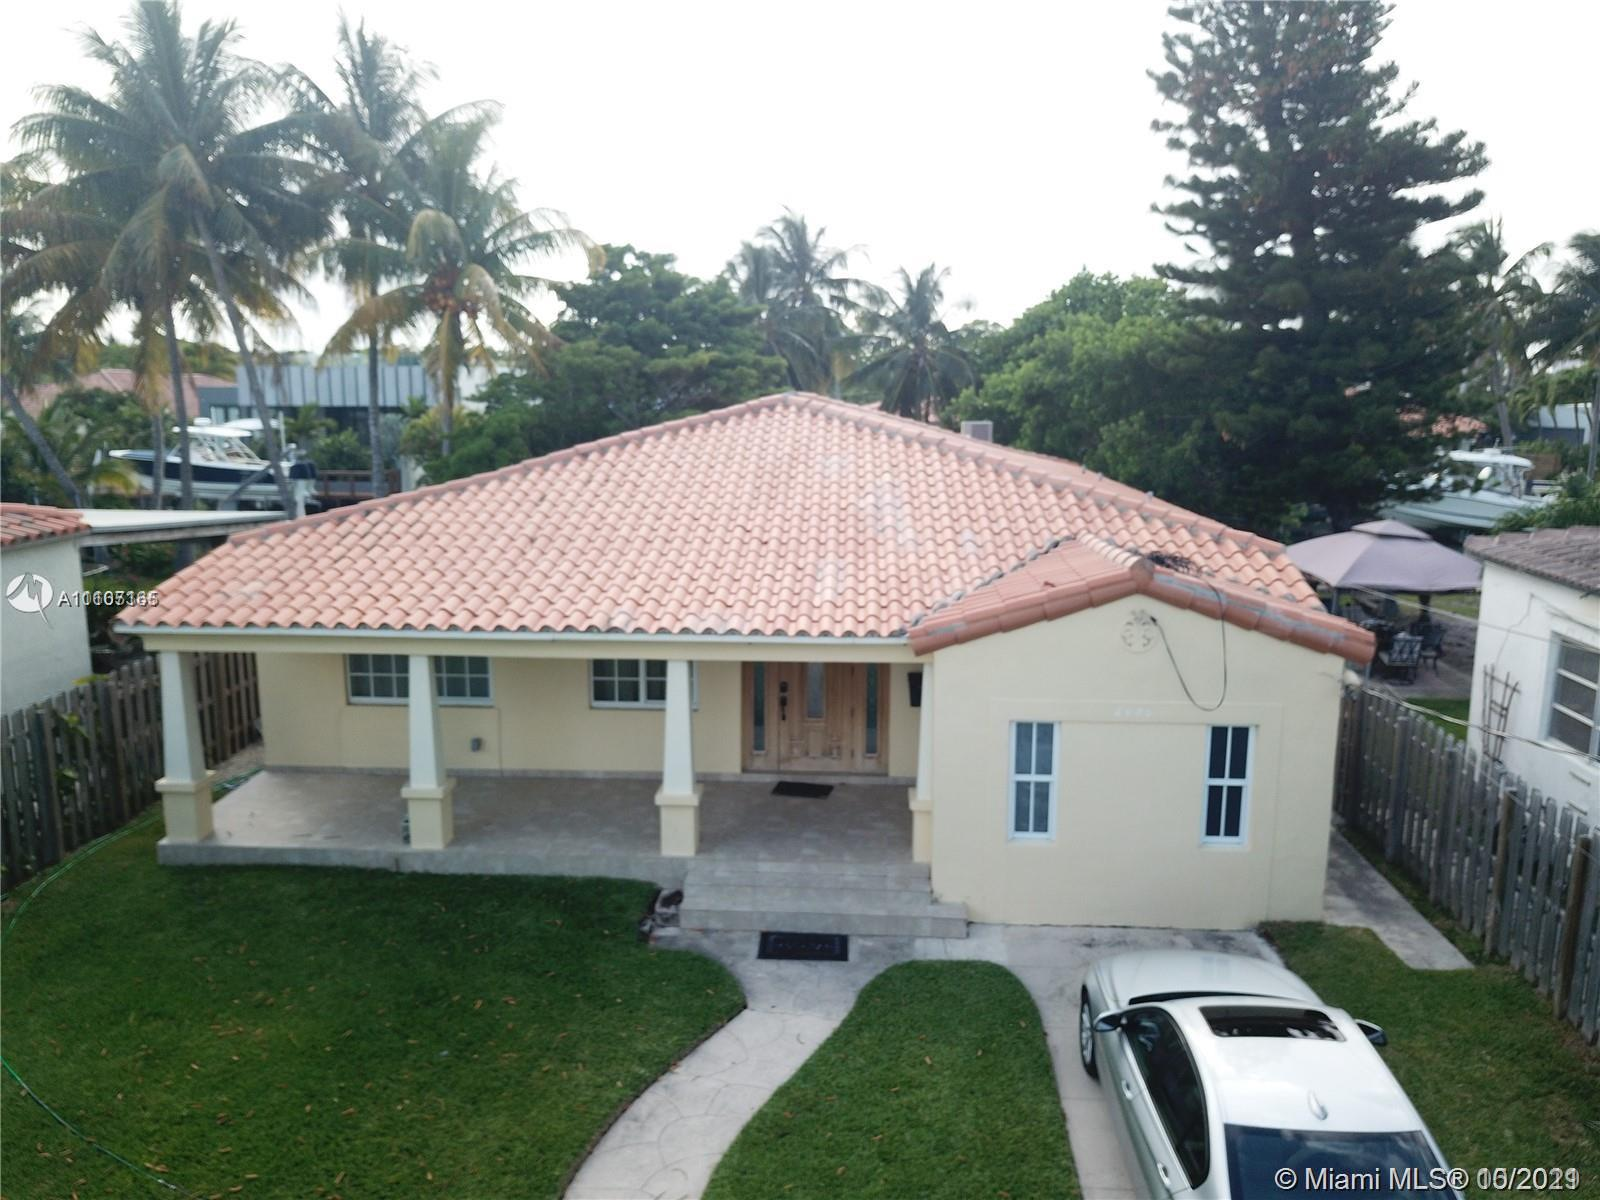 Beautiful remodeled oceanfront home made with great craftsmanship a few blocks from the beach. This 3 bed 3 bath is a hidden gem that overlooks the canal, and is minutes from the bay with no fixed bridges. This country feel home has that cozy feeling, perfect for relaxing in the clawfoot tub, or on the patio lying on a hammock enjoying the beautiful Miami weather. This house is not only for relaxing but also for enjoying family / friends around the updated kitchen with a deep cooper sink with granite cabinets and a large island that gives pleasure to entertain. On a large lot with plenty of driveway parking for you and your guest. Call for showings.